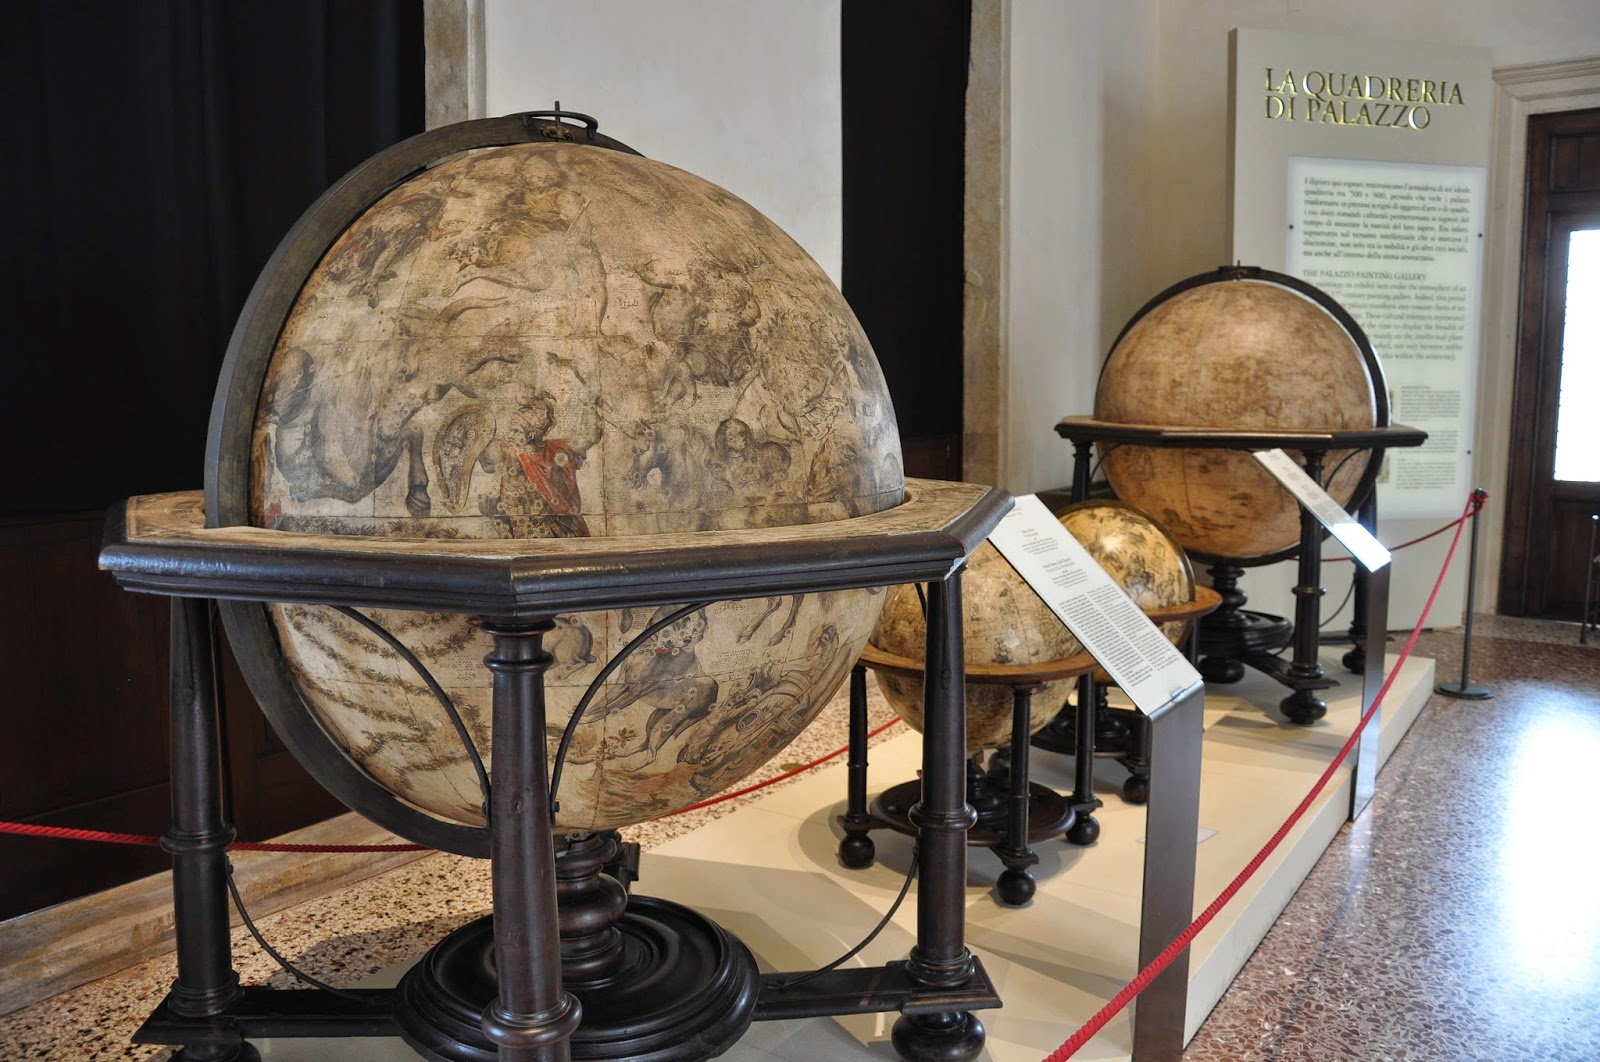 globes main room Civic Art Gallery Palazzo Chiericati Vicenza